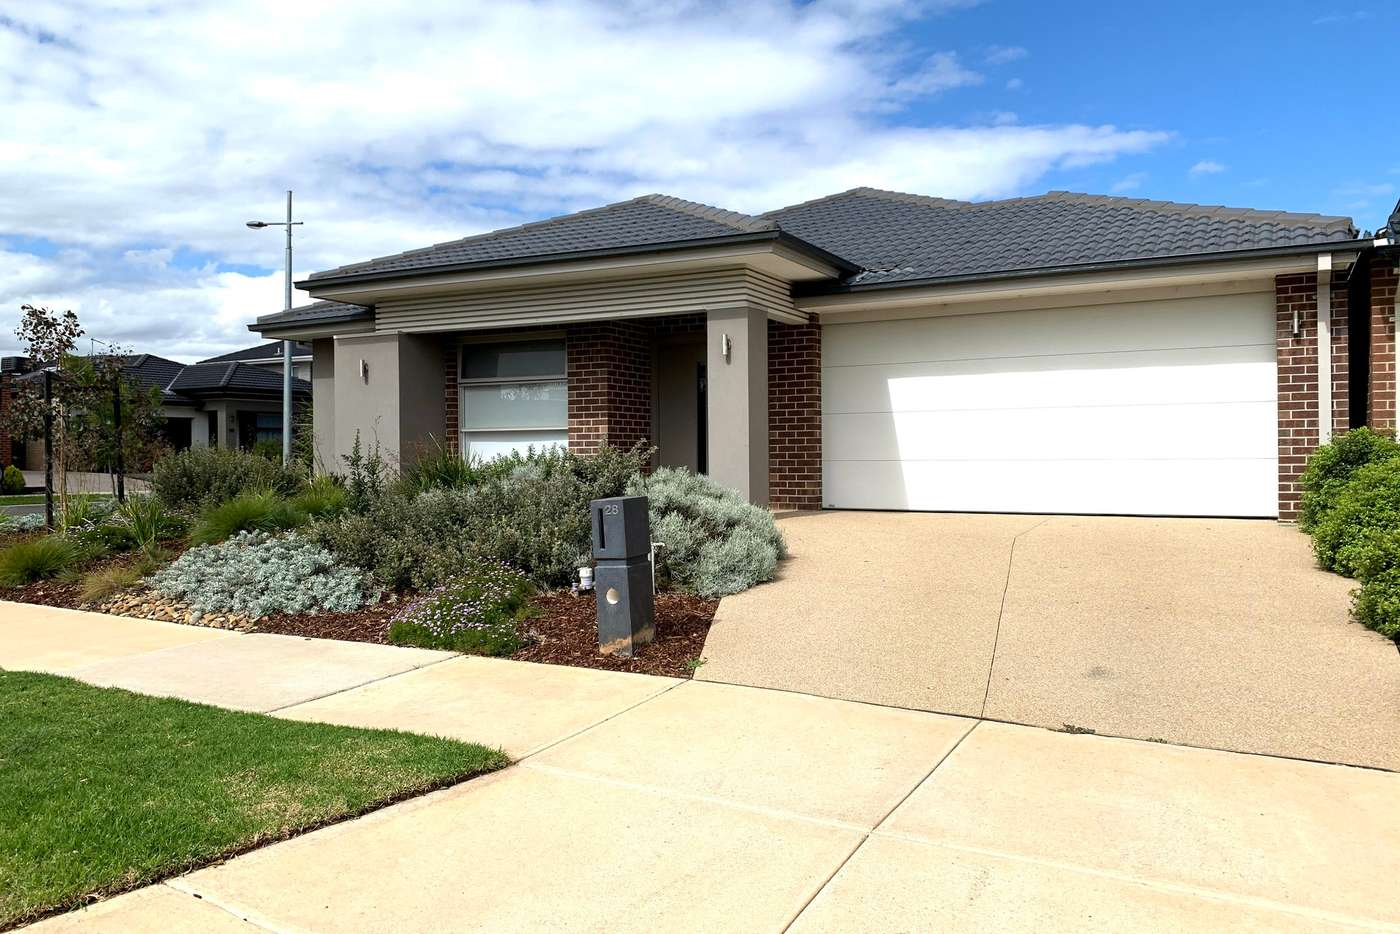 Main view of Homely house listing, 28 Brookside Drive, Wyndham Vale VIC 3024